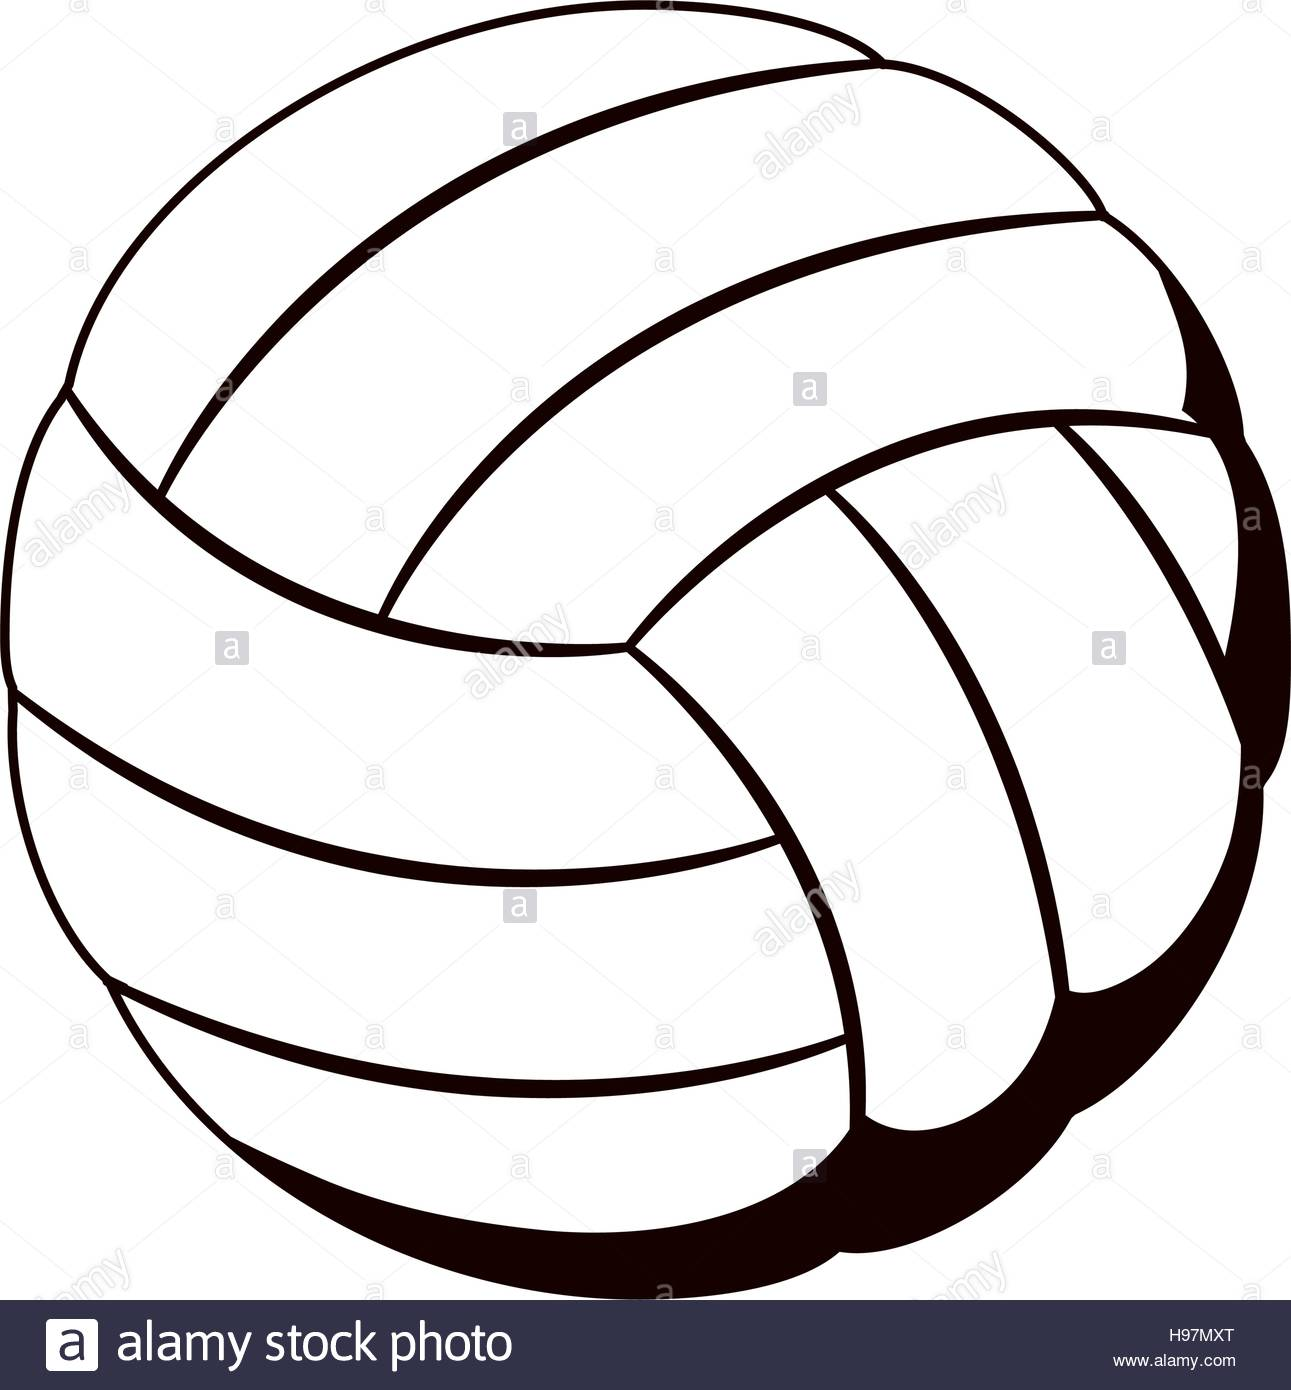 1291x1390 Silhouette Monochrome With Volleyball Ball Stock Vector Art